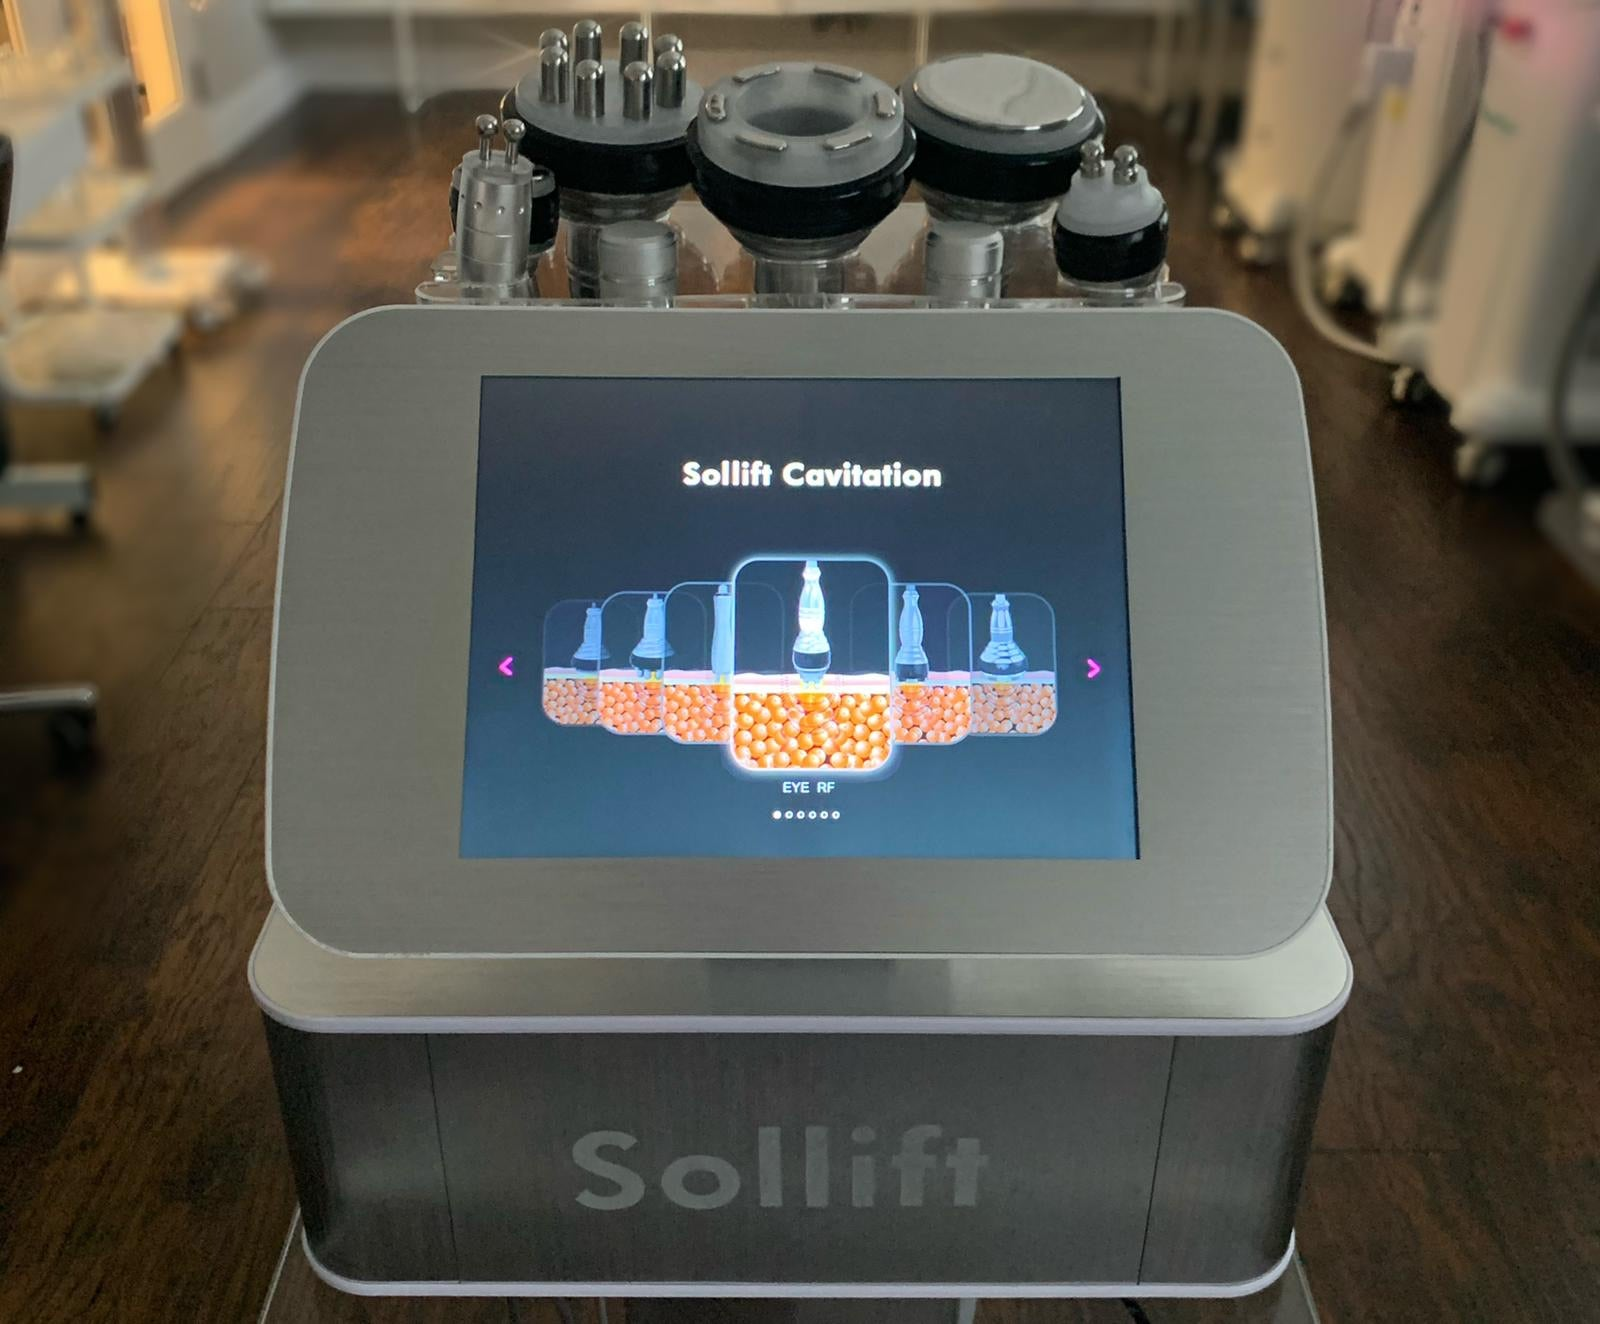 Sollift 6-in-1 Cavitation System